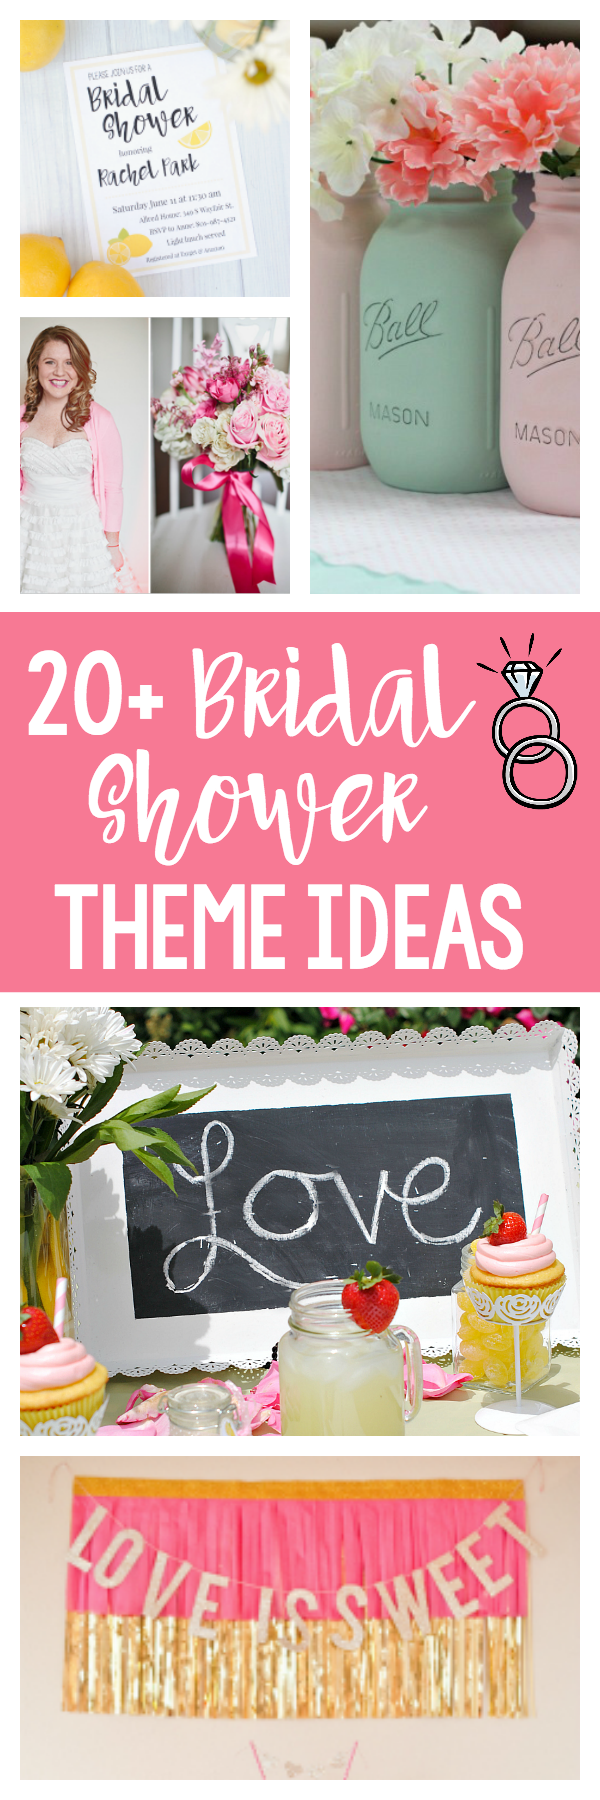 20 Fun Bridal Shower Themes and Ideas-Everything from summer fun to vintage and a whole bunch more. Tons of great bridal shower theme ideas to you rolling with planning your shower. #bridalshower #wedding #bridalshowers #bridalshowerthemes